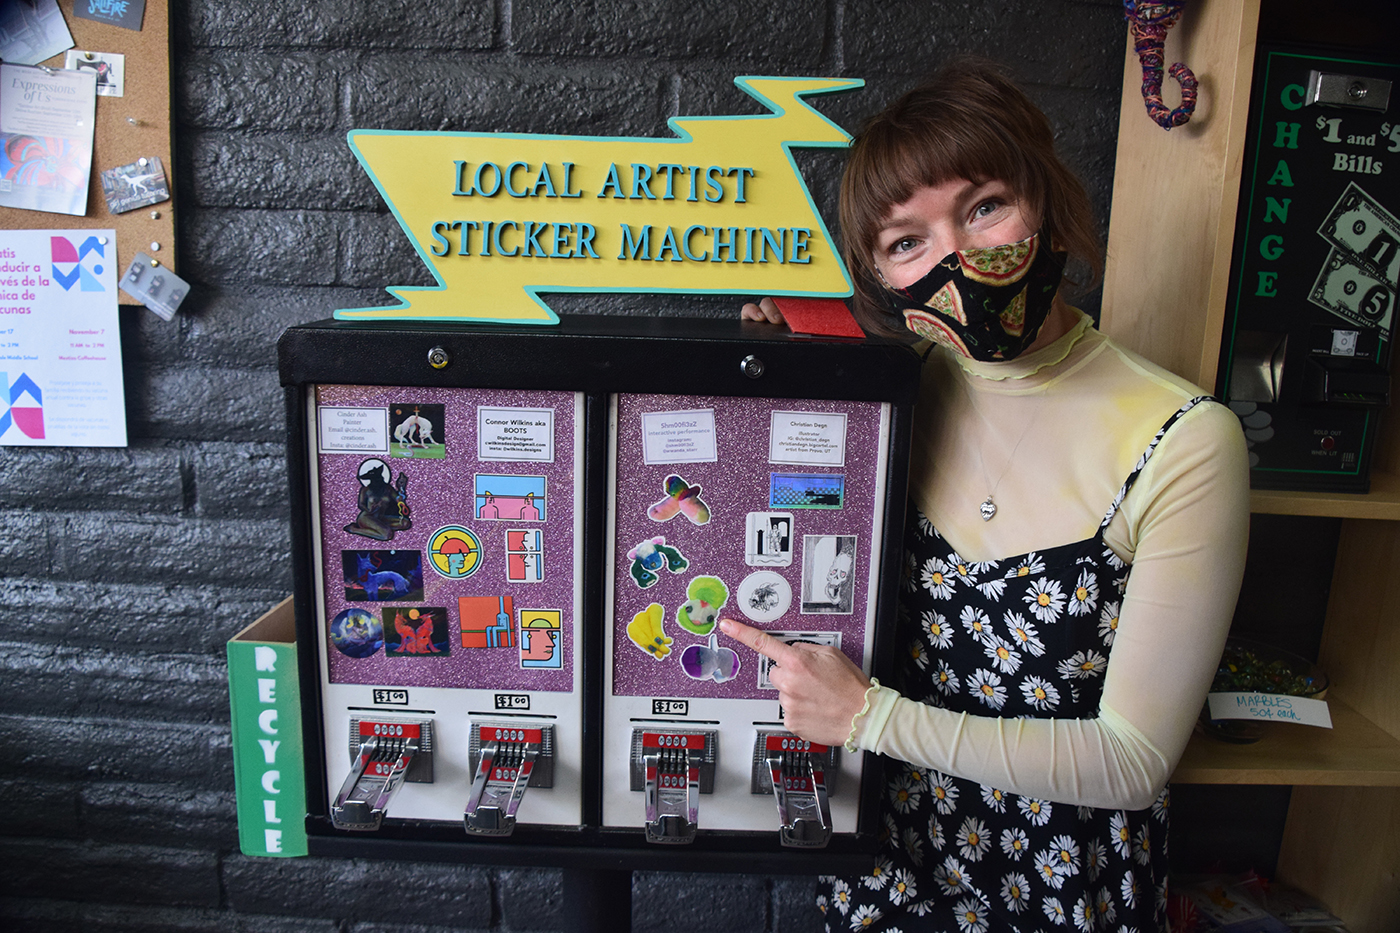 Local Artist Sticker Machine, founded by Natalie Allsup-Edwards, provides a fun, bite-sized way to support your local arts community.